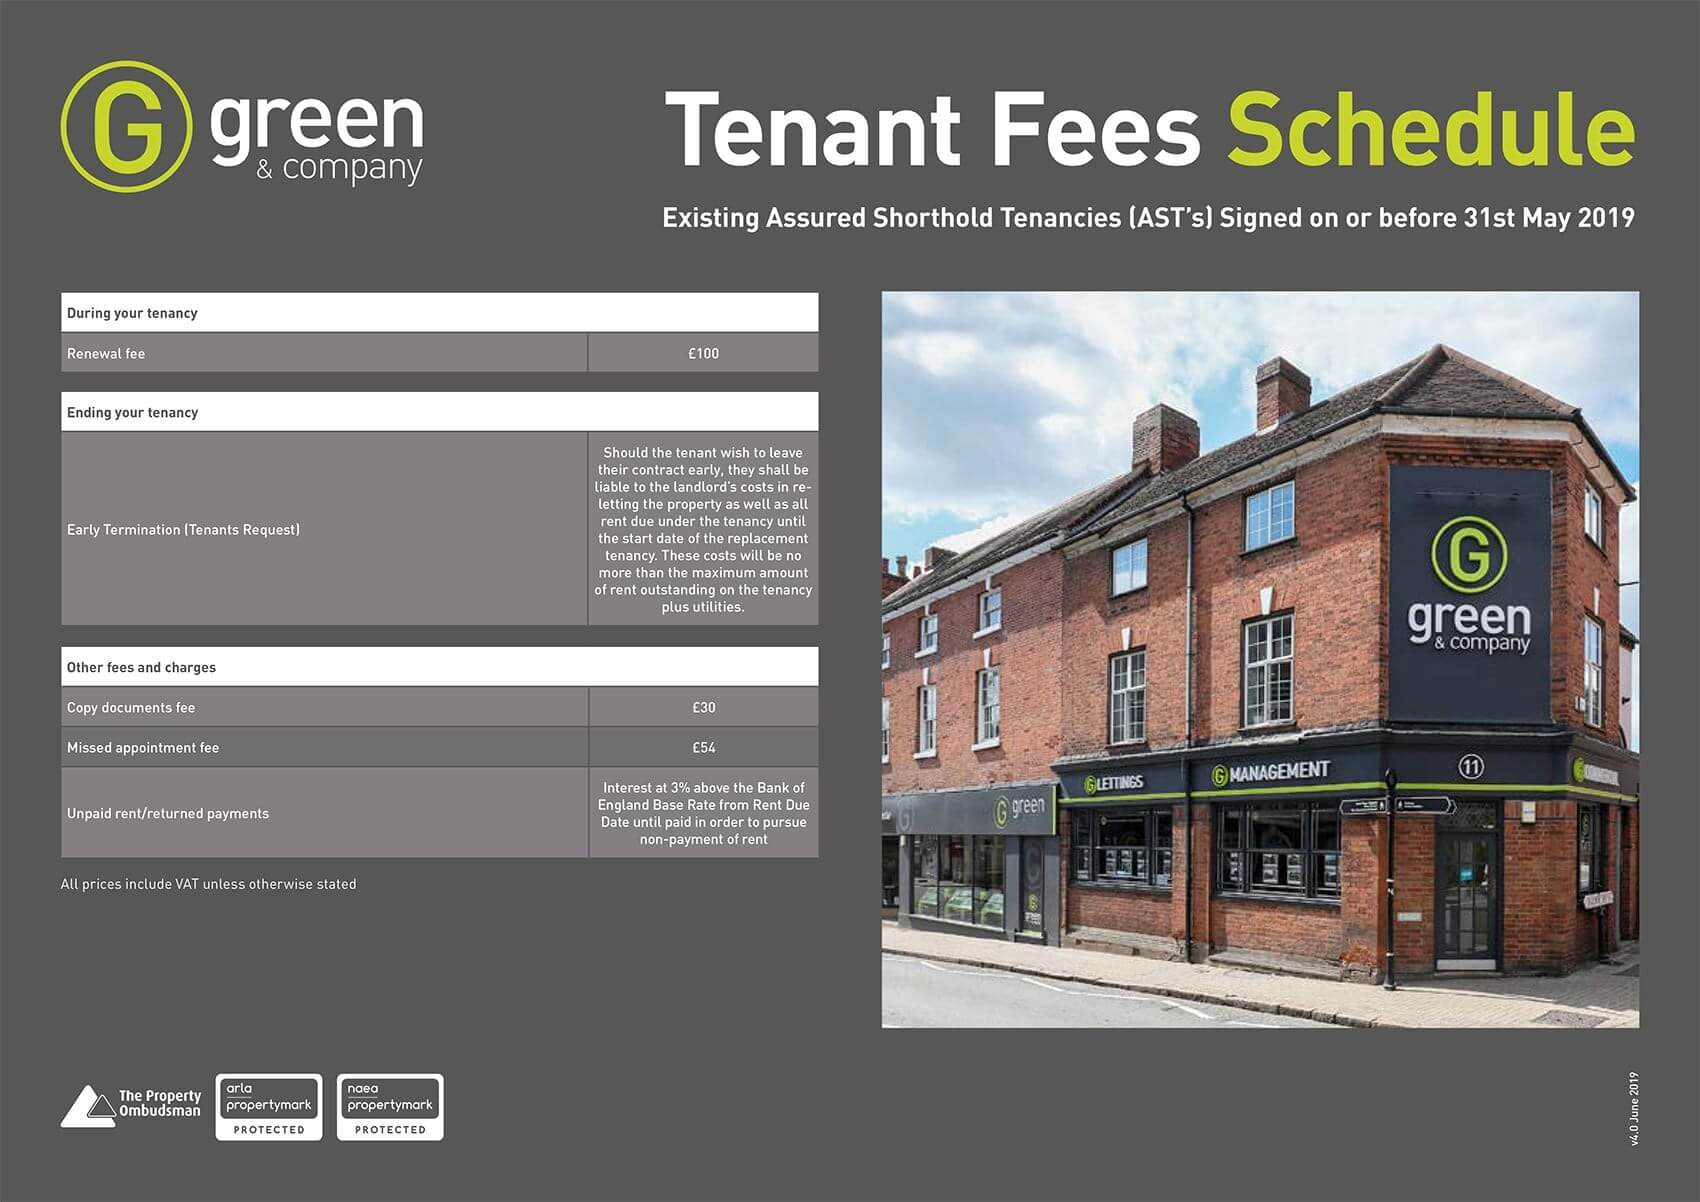 Greens tenant fees June 2019